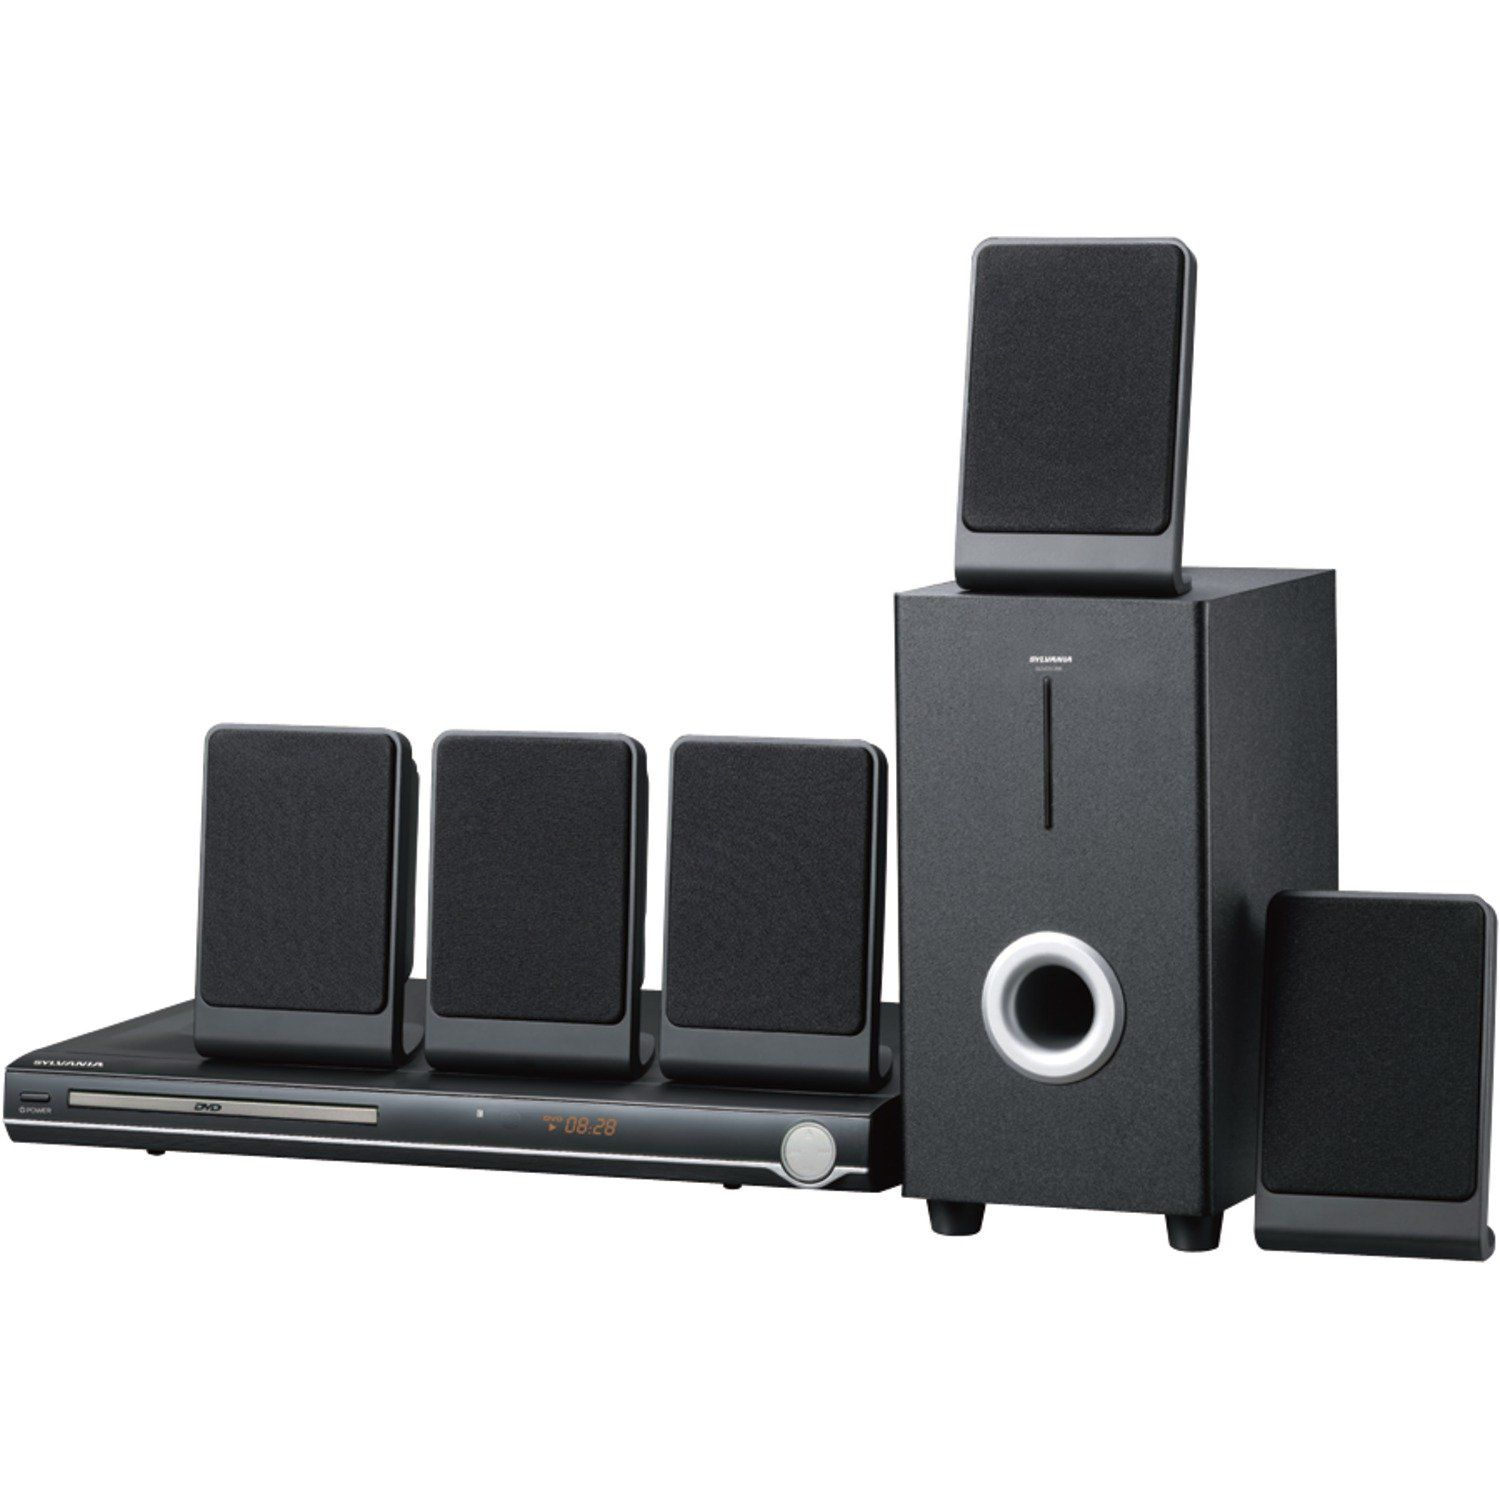 Sylvania Curtis 5.1 Channel Progressive Scan DVD Mini Bookshelf Home ...